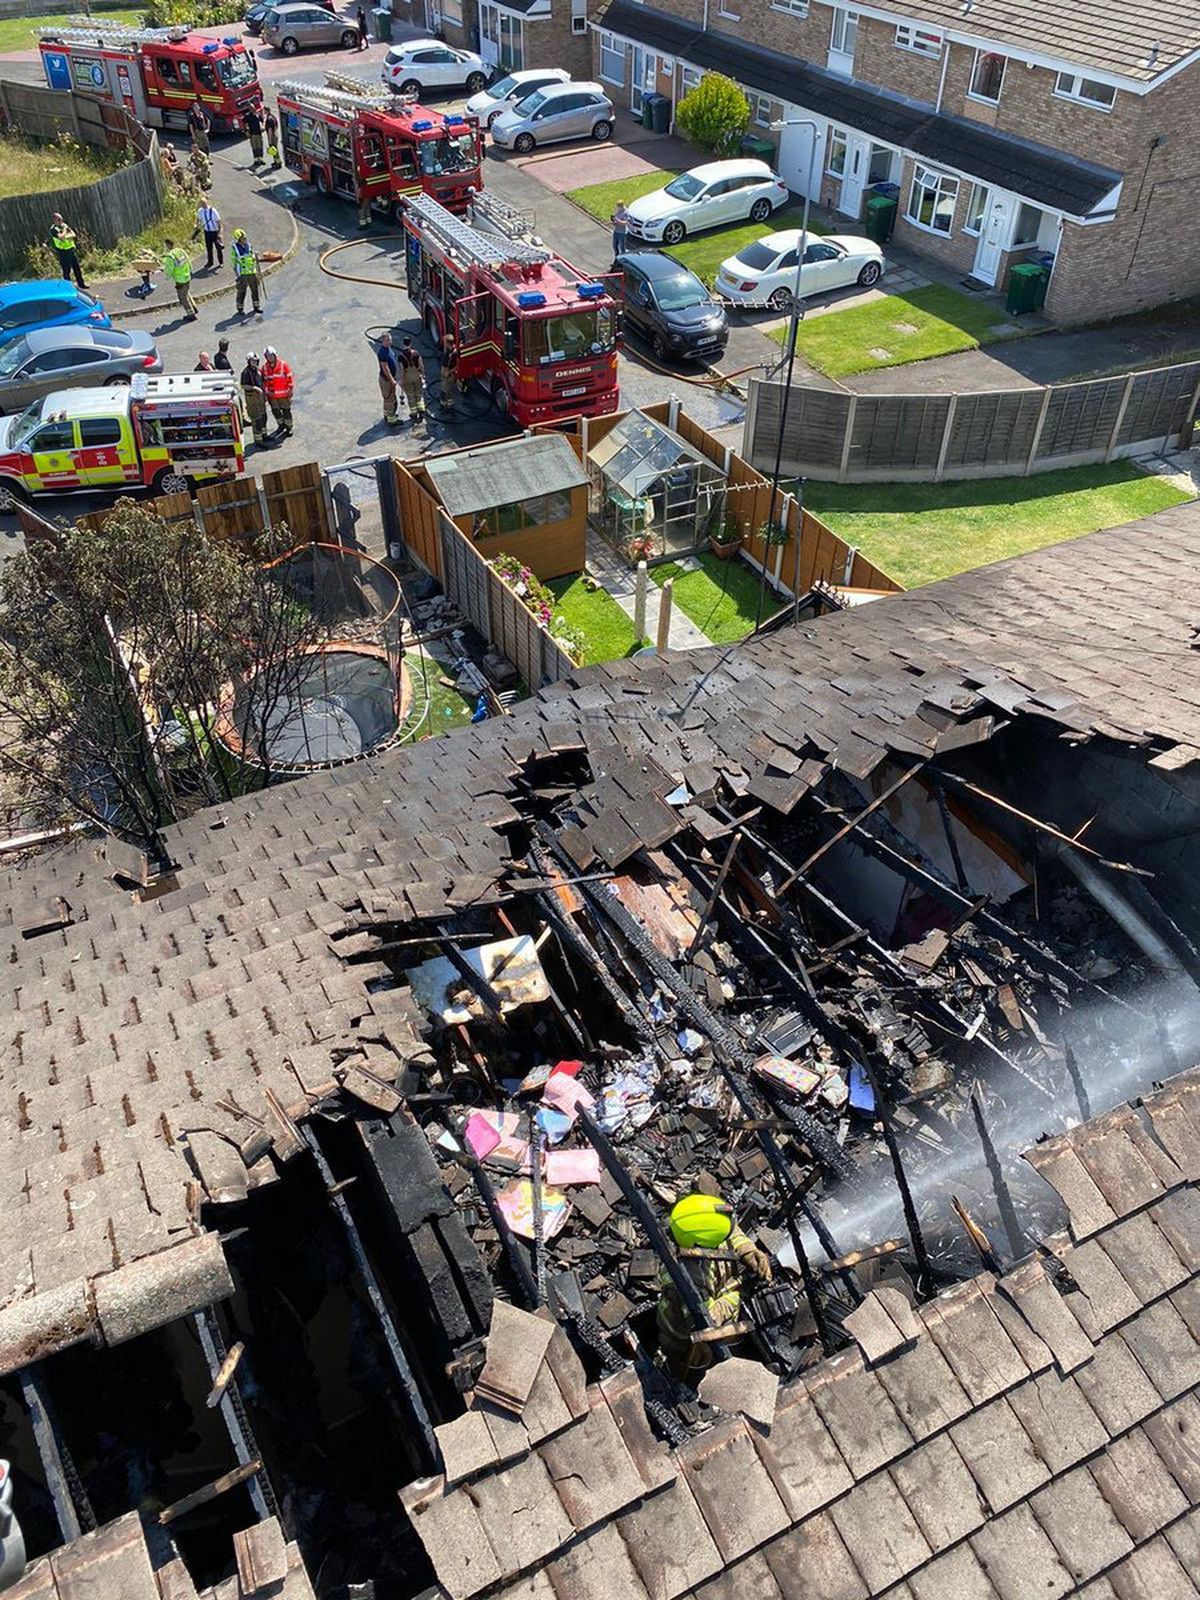 An aerial view of the damage. Photo: West Midlands Fire Service